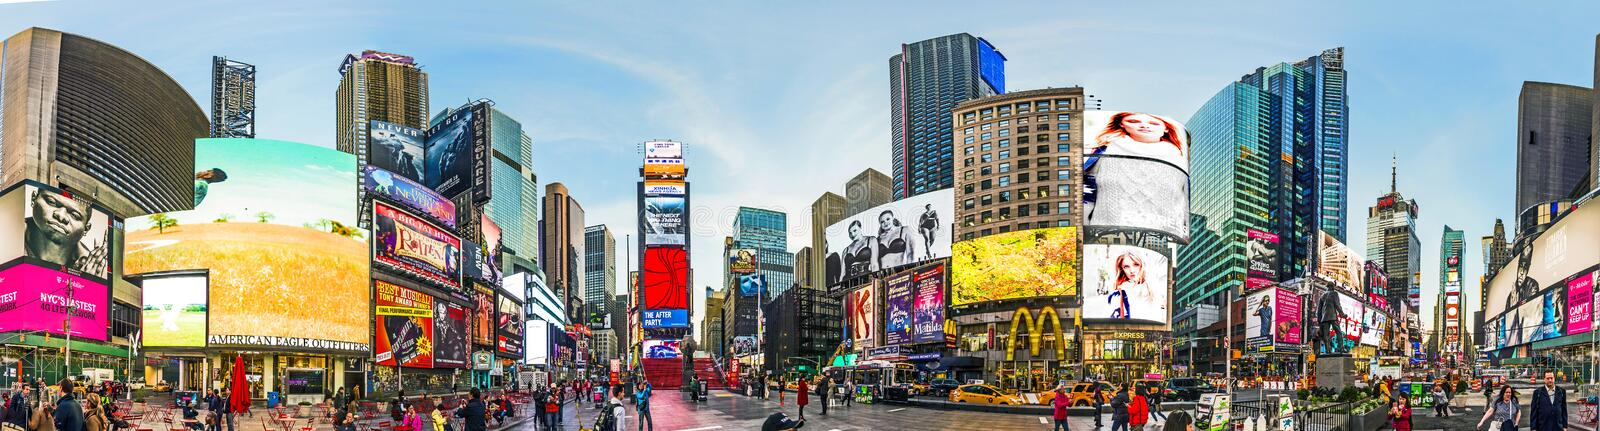 People at Times Square in early morning light. NEW YORK, USA - OCT 21, 2015: people visit Times Square, featured with Broadway Theaters and huge number of LED stock image